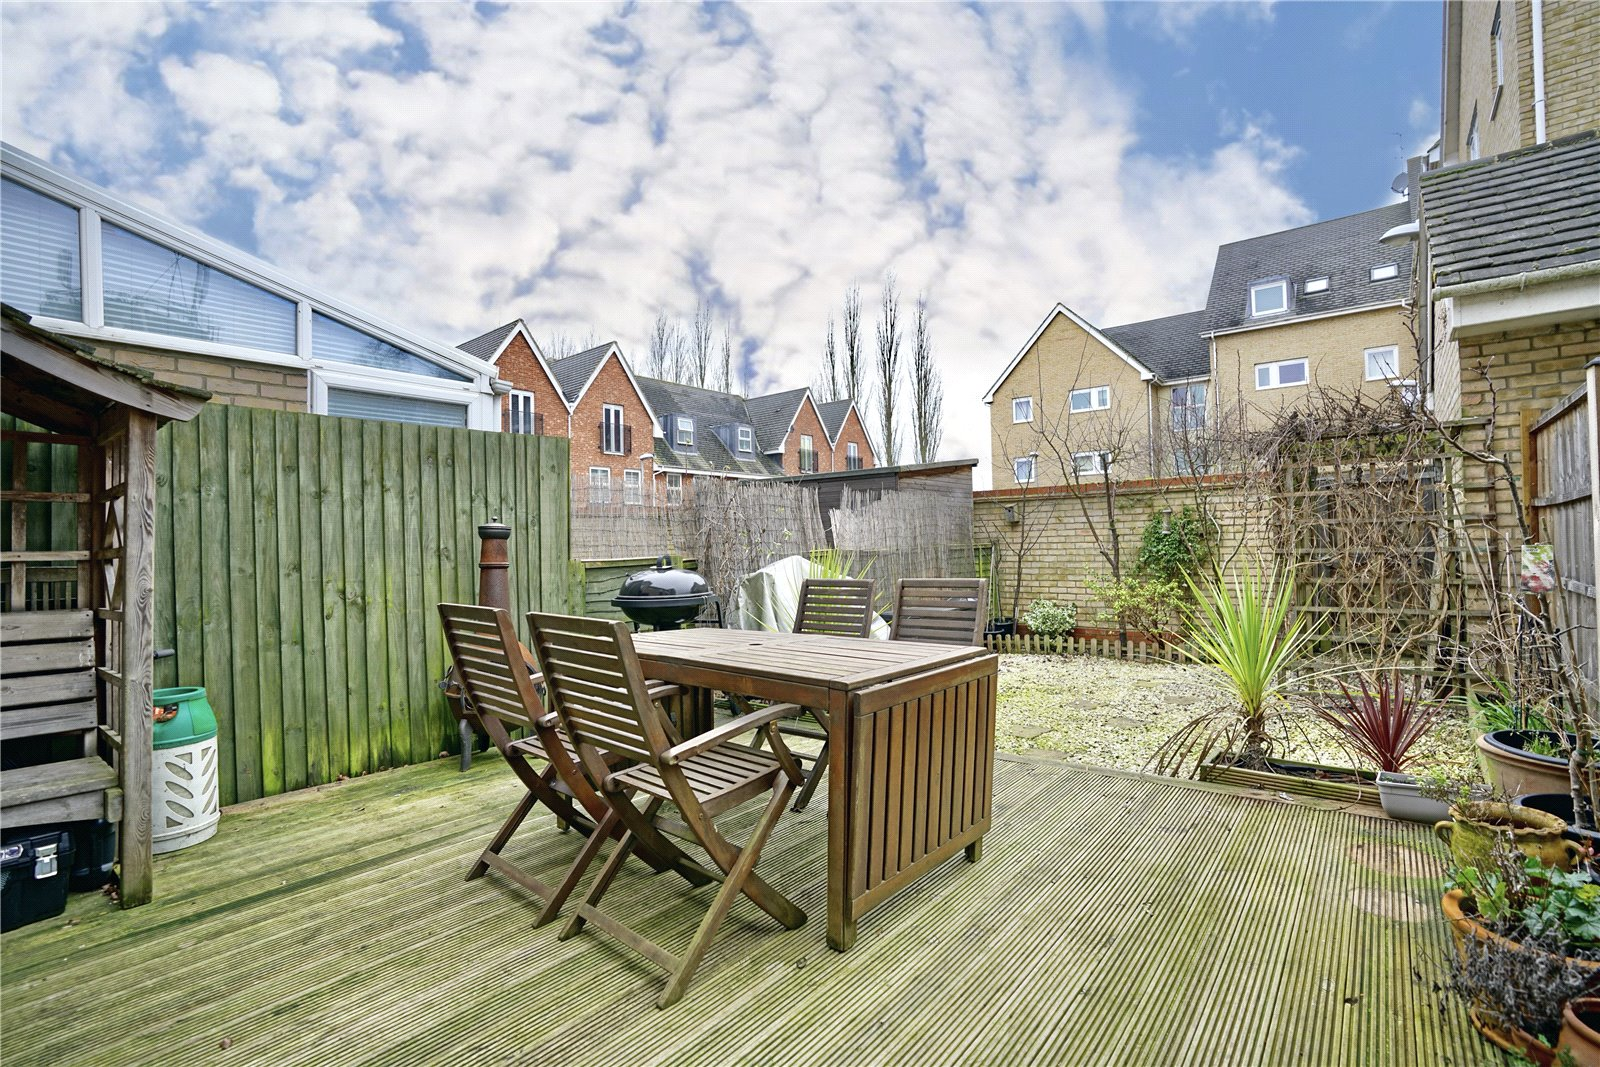 3 bed house for sale in Linton Close, Eaton Socon 9